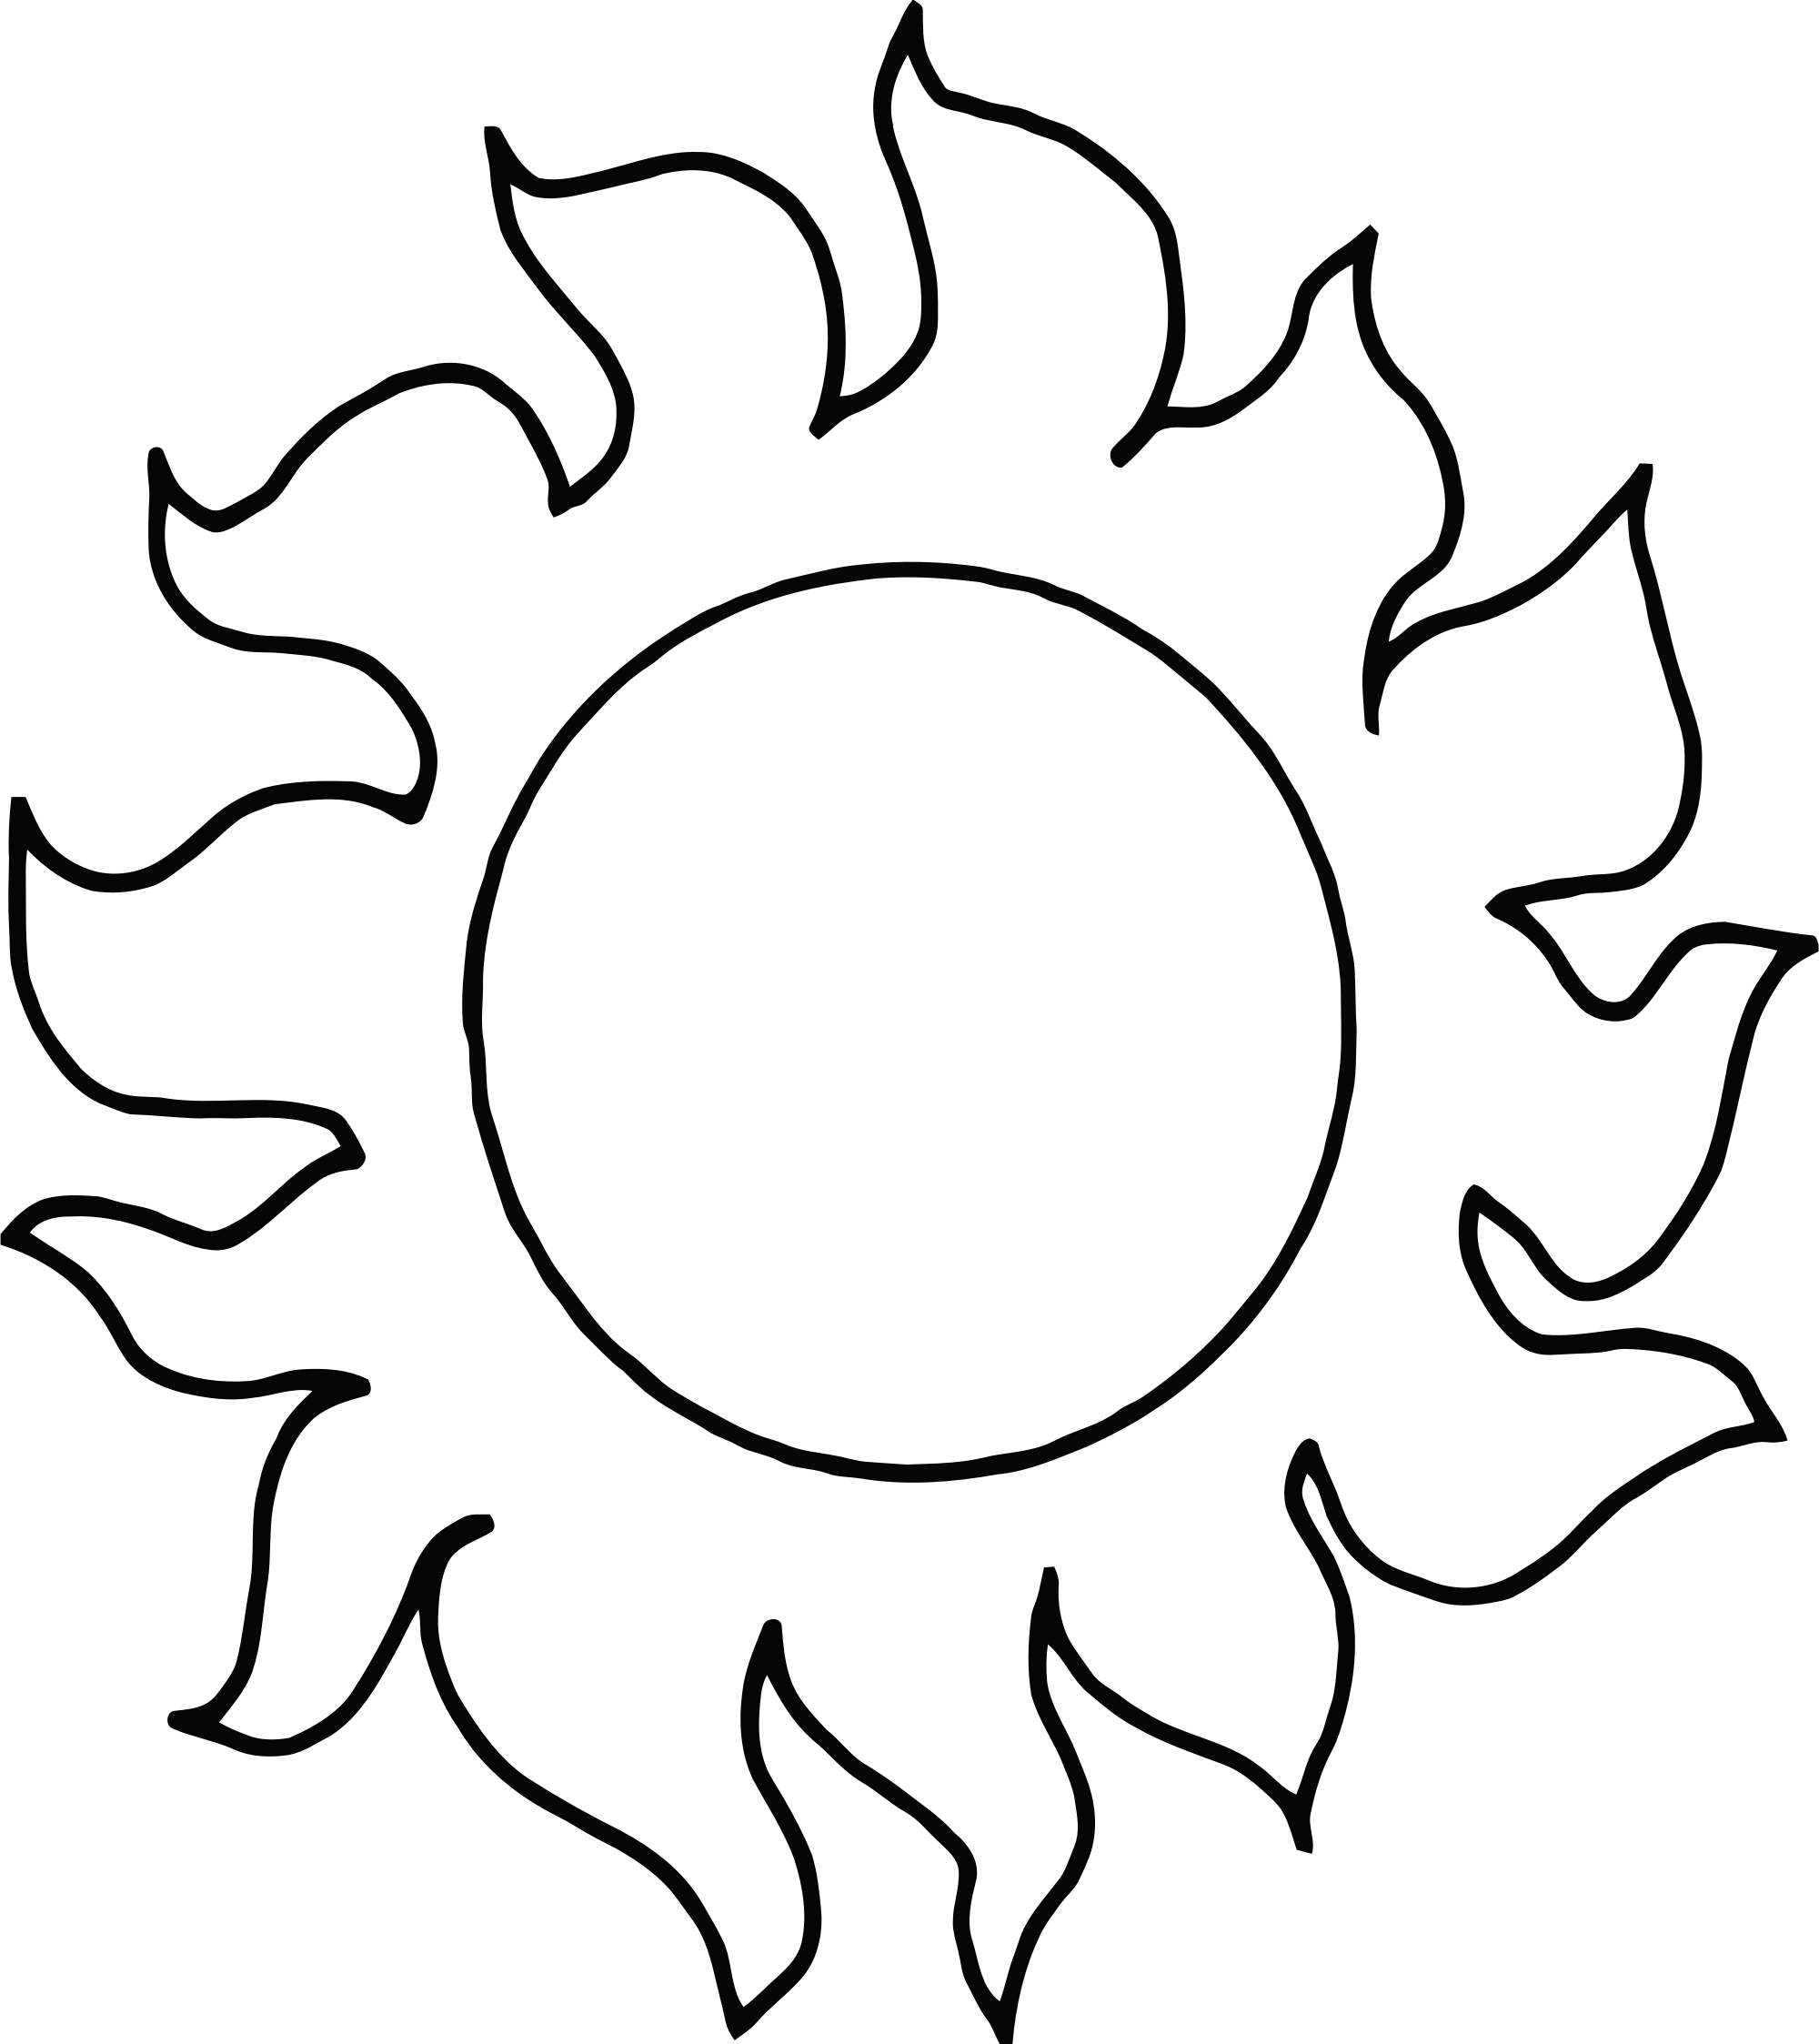 clip free library Drawing of the sun. Sunset clipart black and white